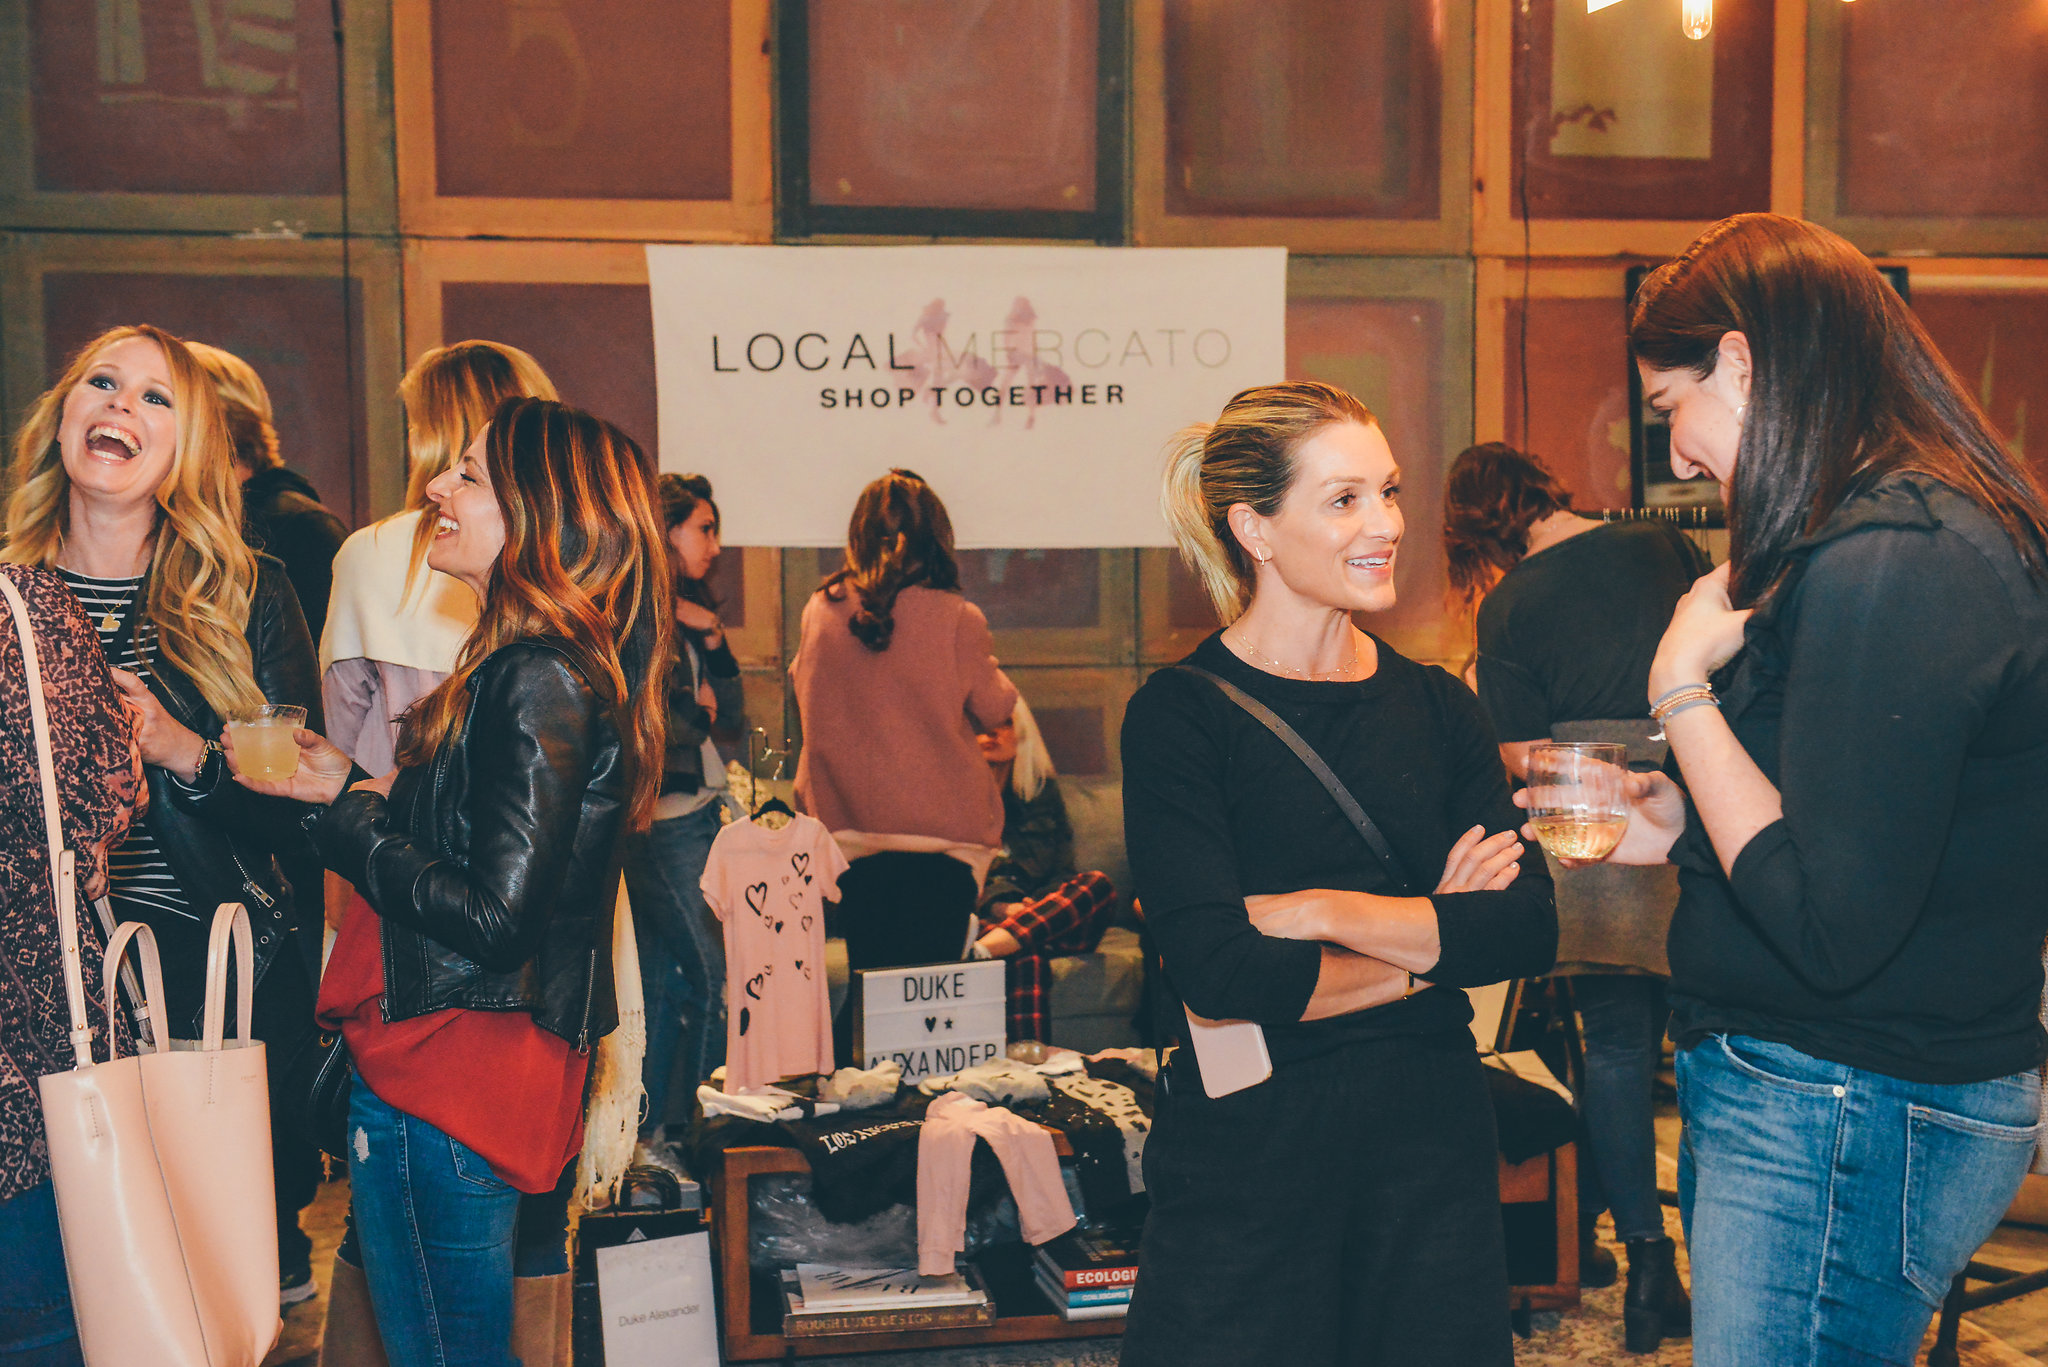 LM EVENTS - Connecting Community through Commerce & Conversations